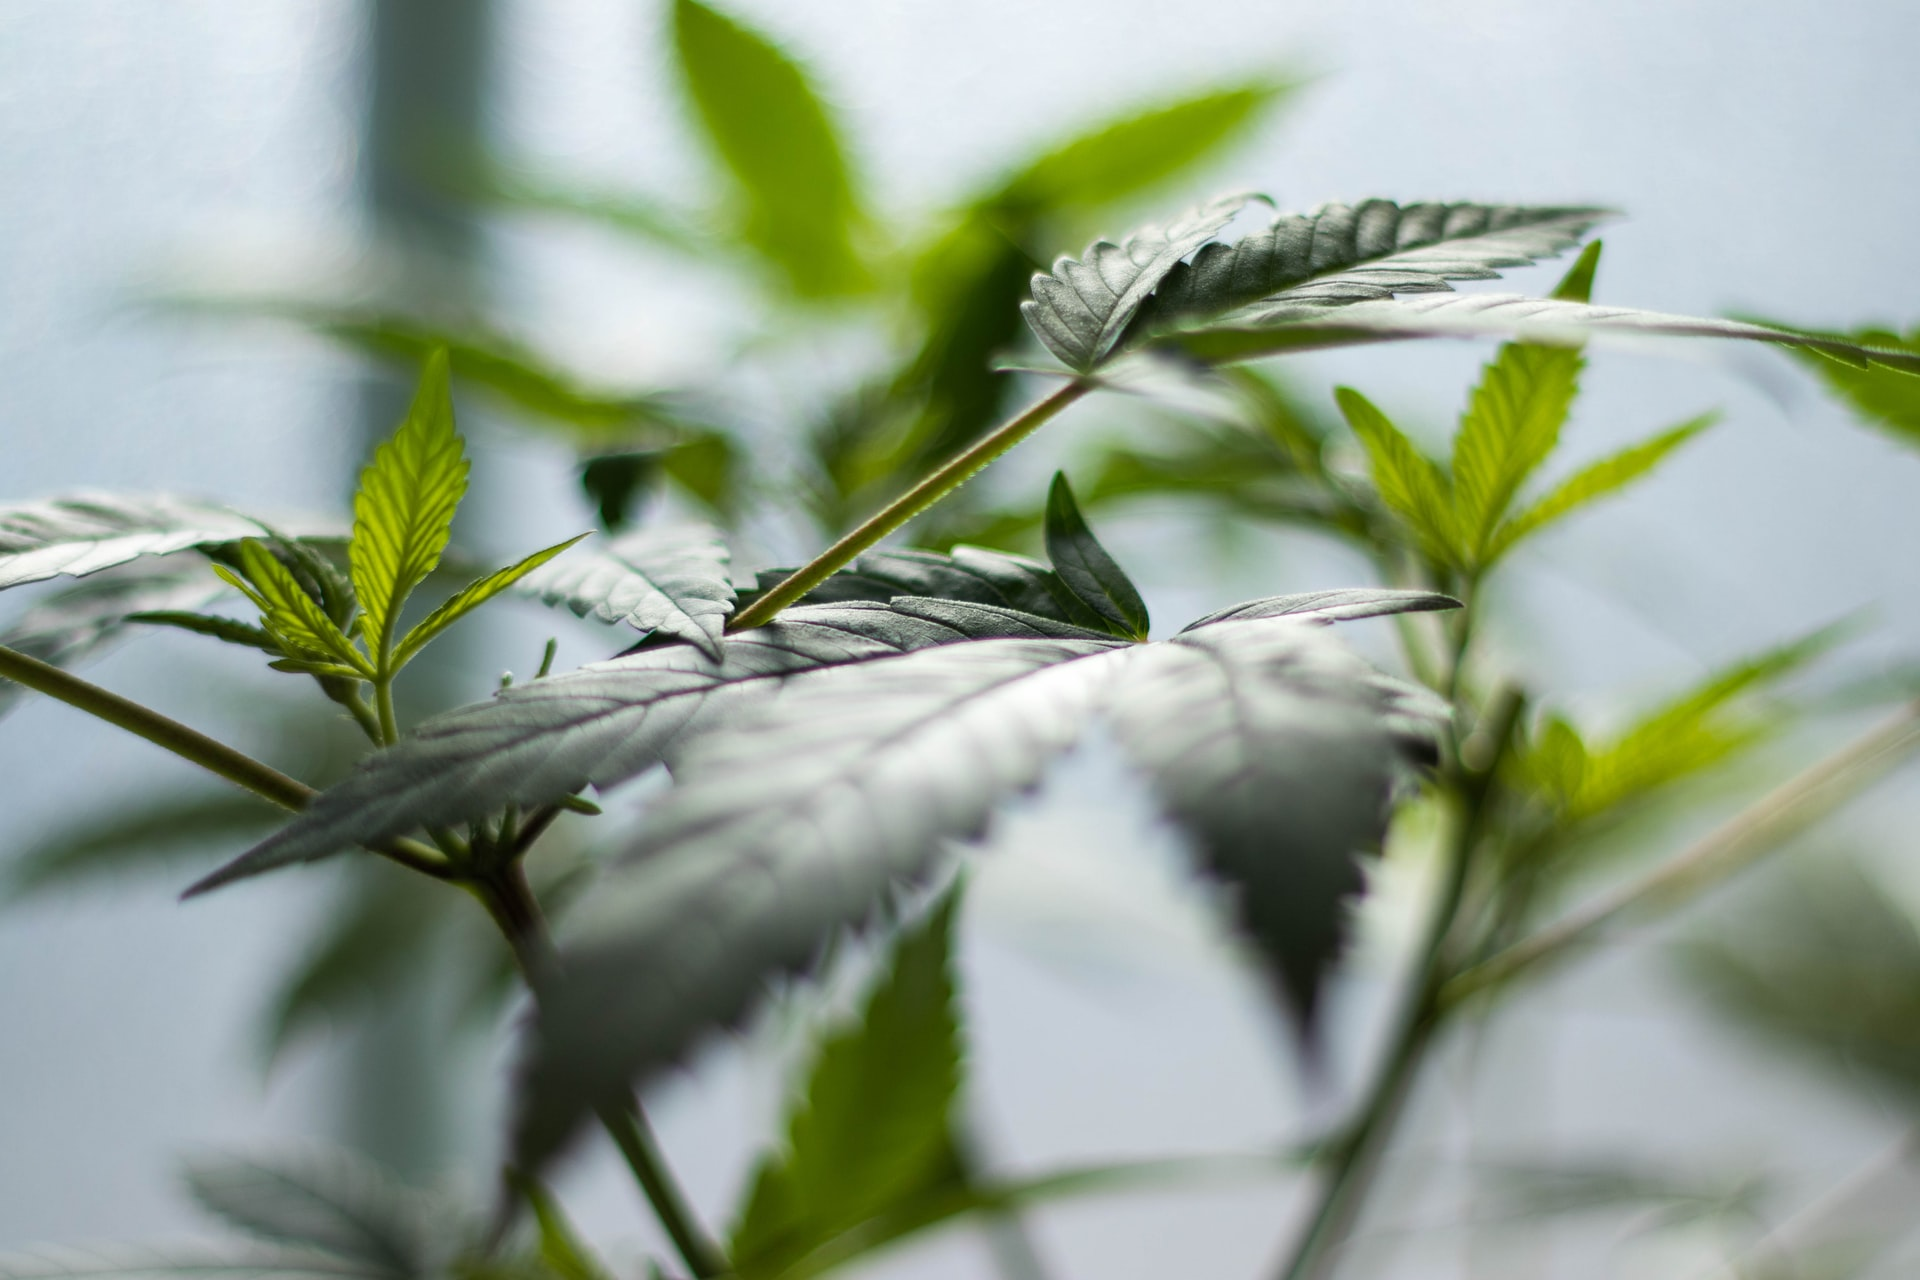 leaves of cannabis plant